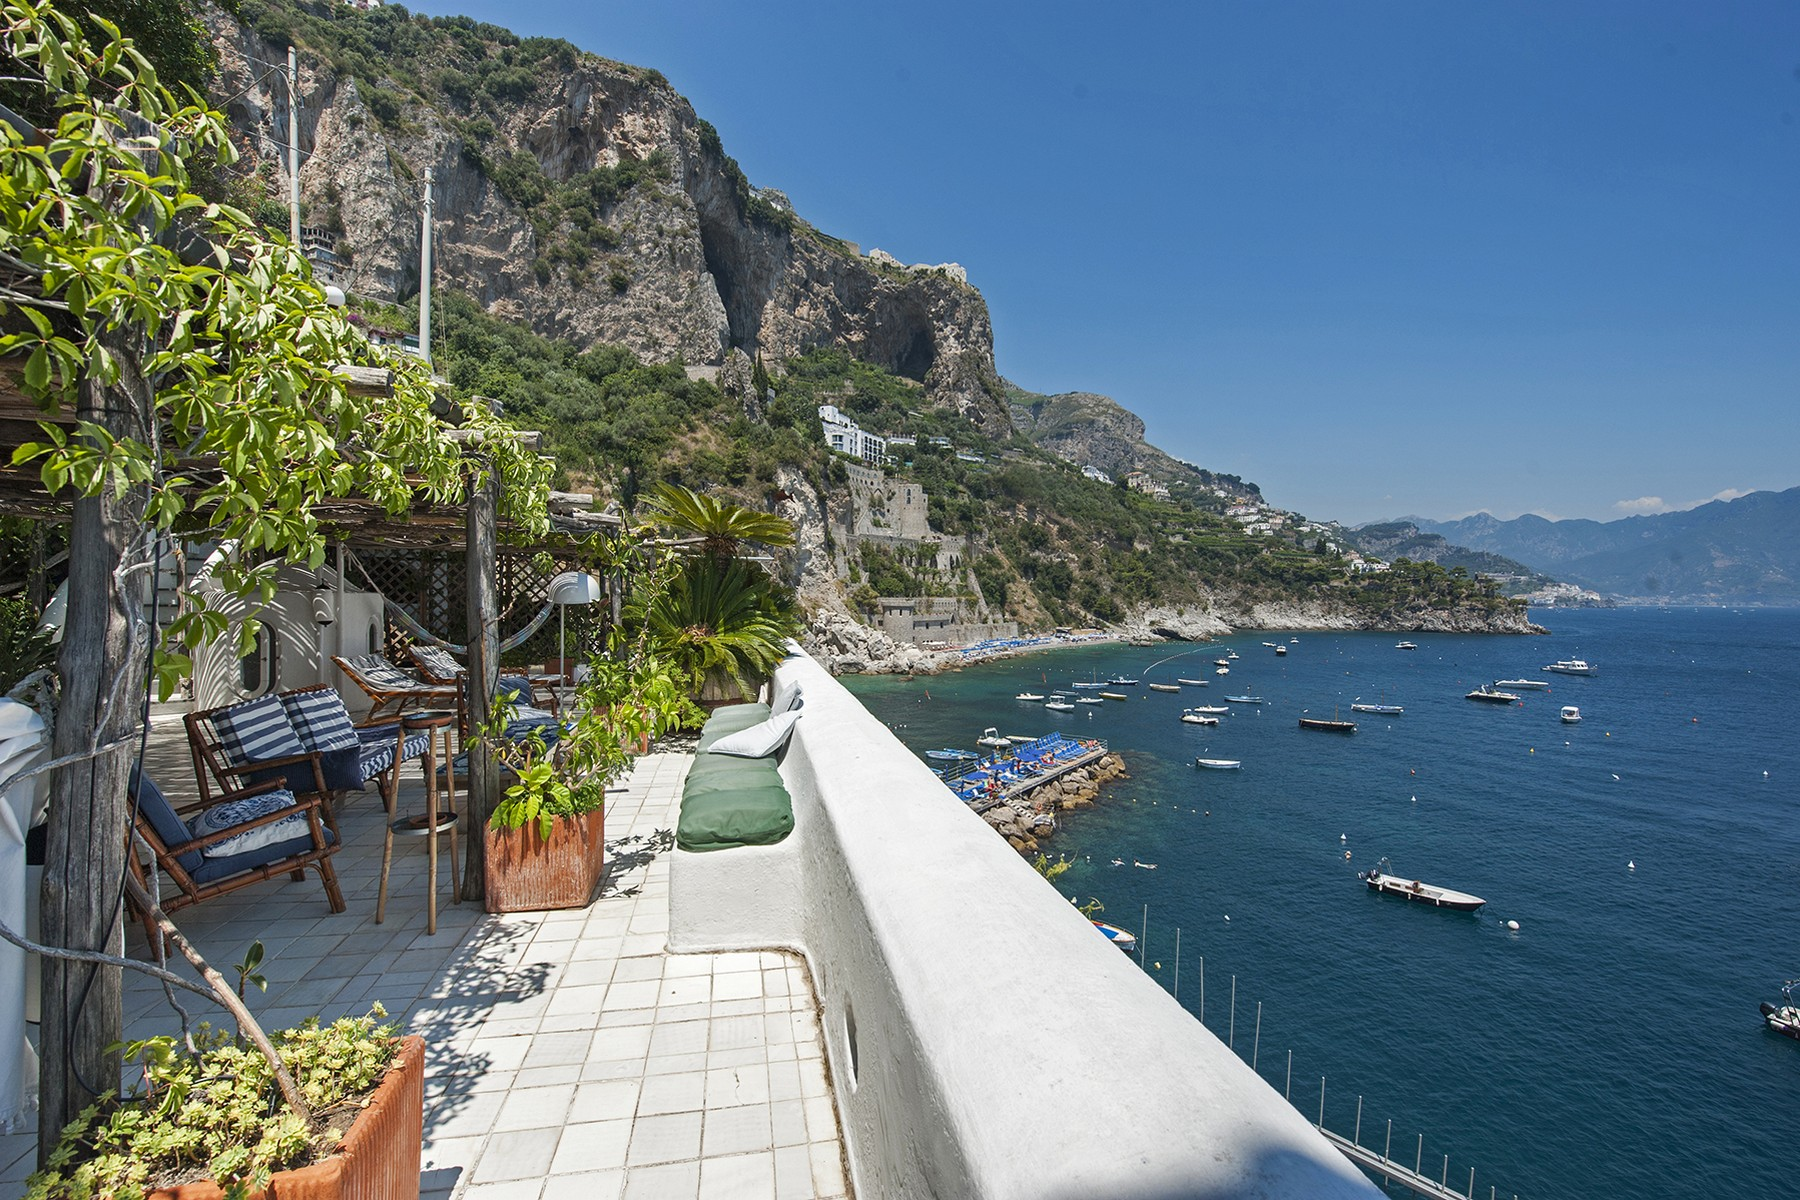 Townhouse for Sale at Villa Chandon Via Marina Conca Dei Marini, Salerno 84010 Italy